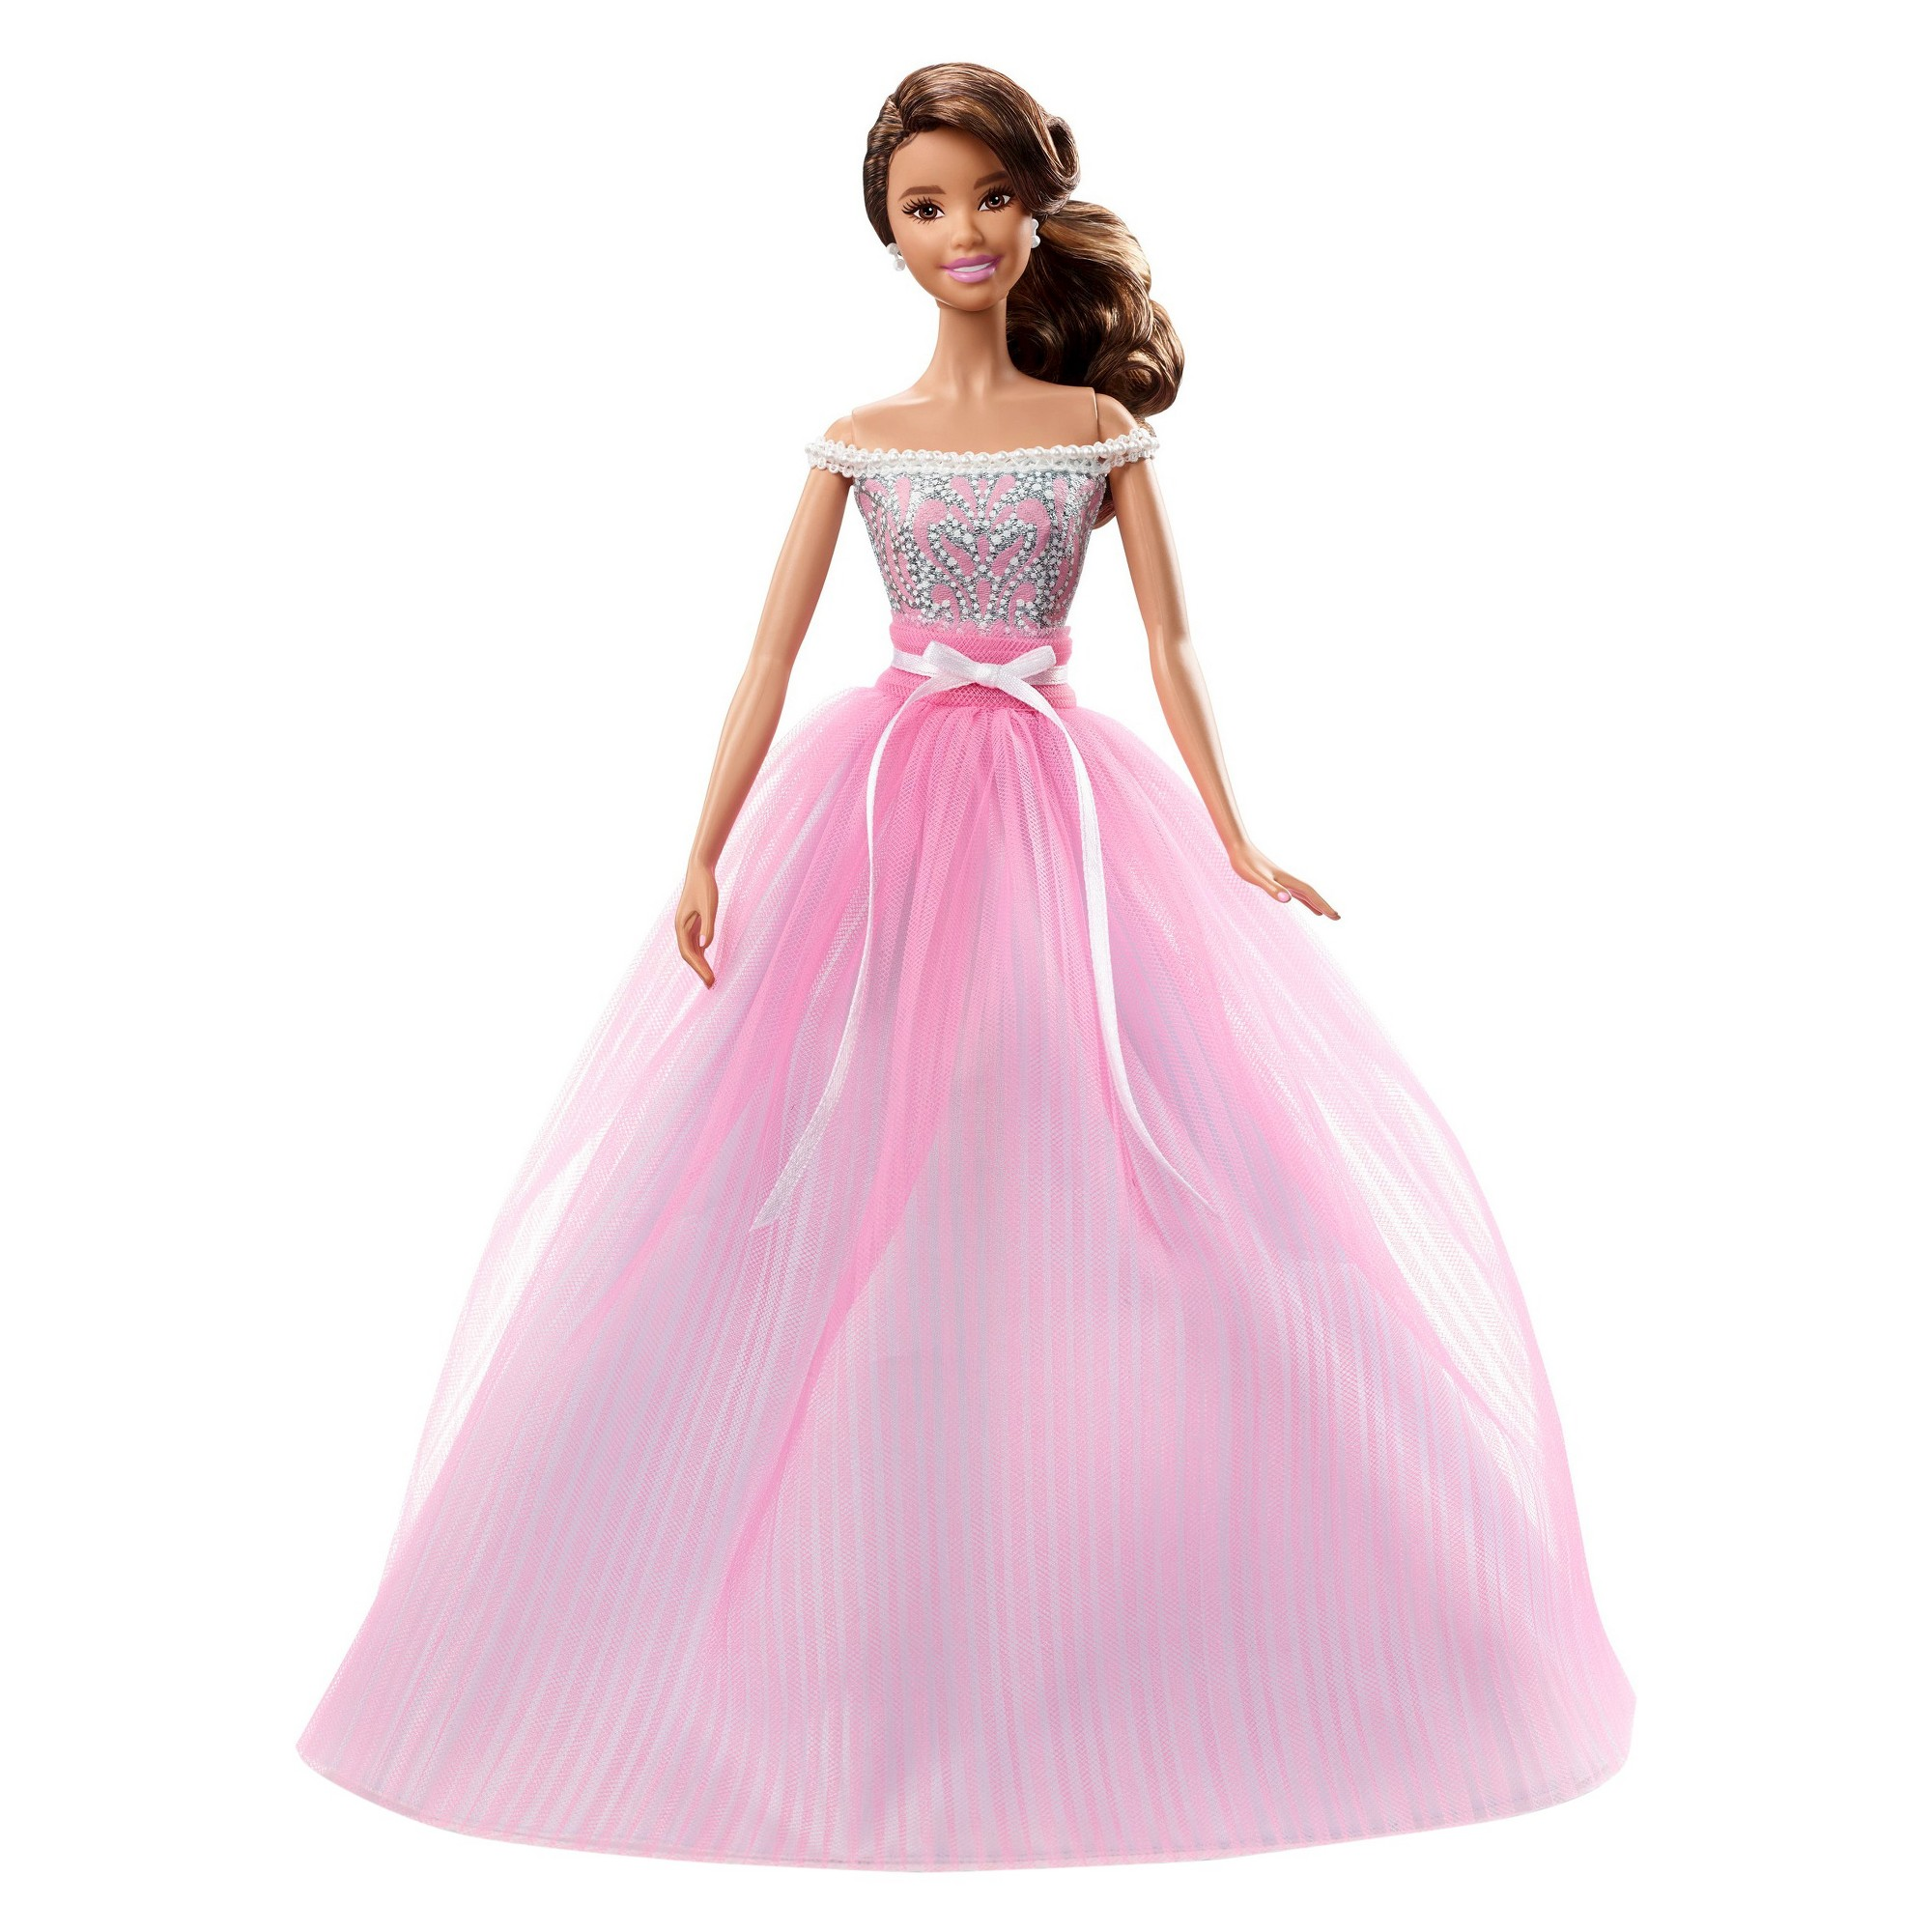 Barbie Collector Birthday Wishes Latina Doll